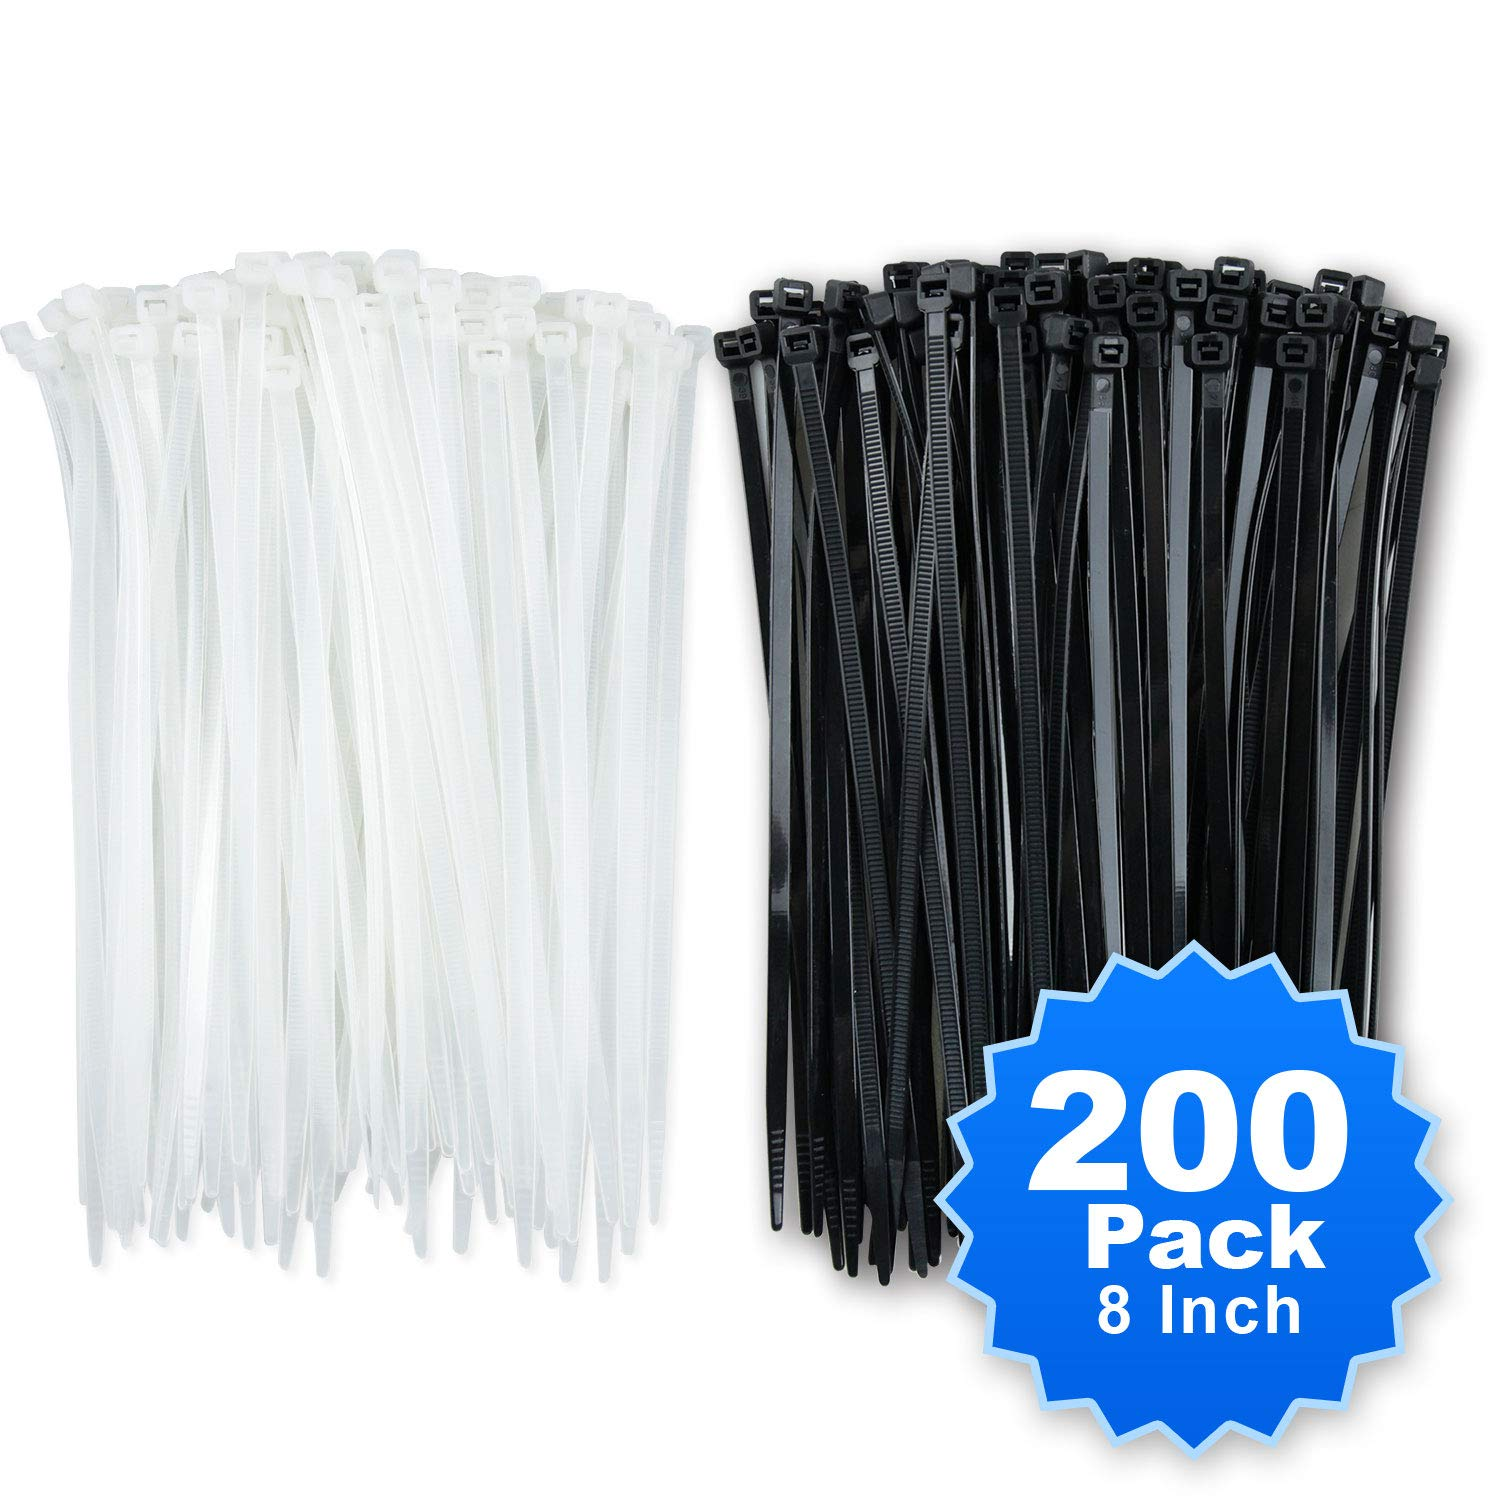 Simple Deluxe 200-Pack 8 Inch Self-Locking Versatile Nylon Cable Wire Zip Ties in Black /& White HICBLETIE8